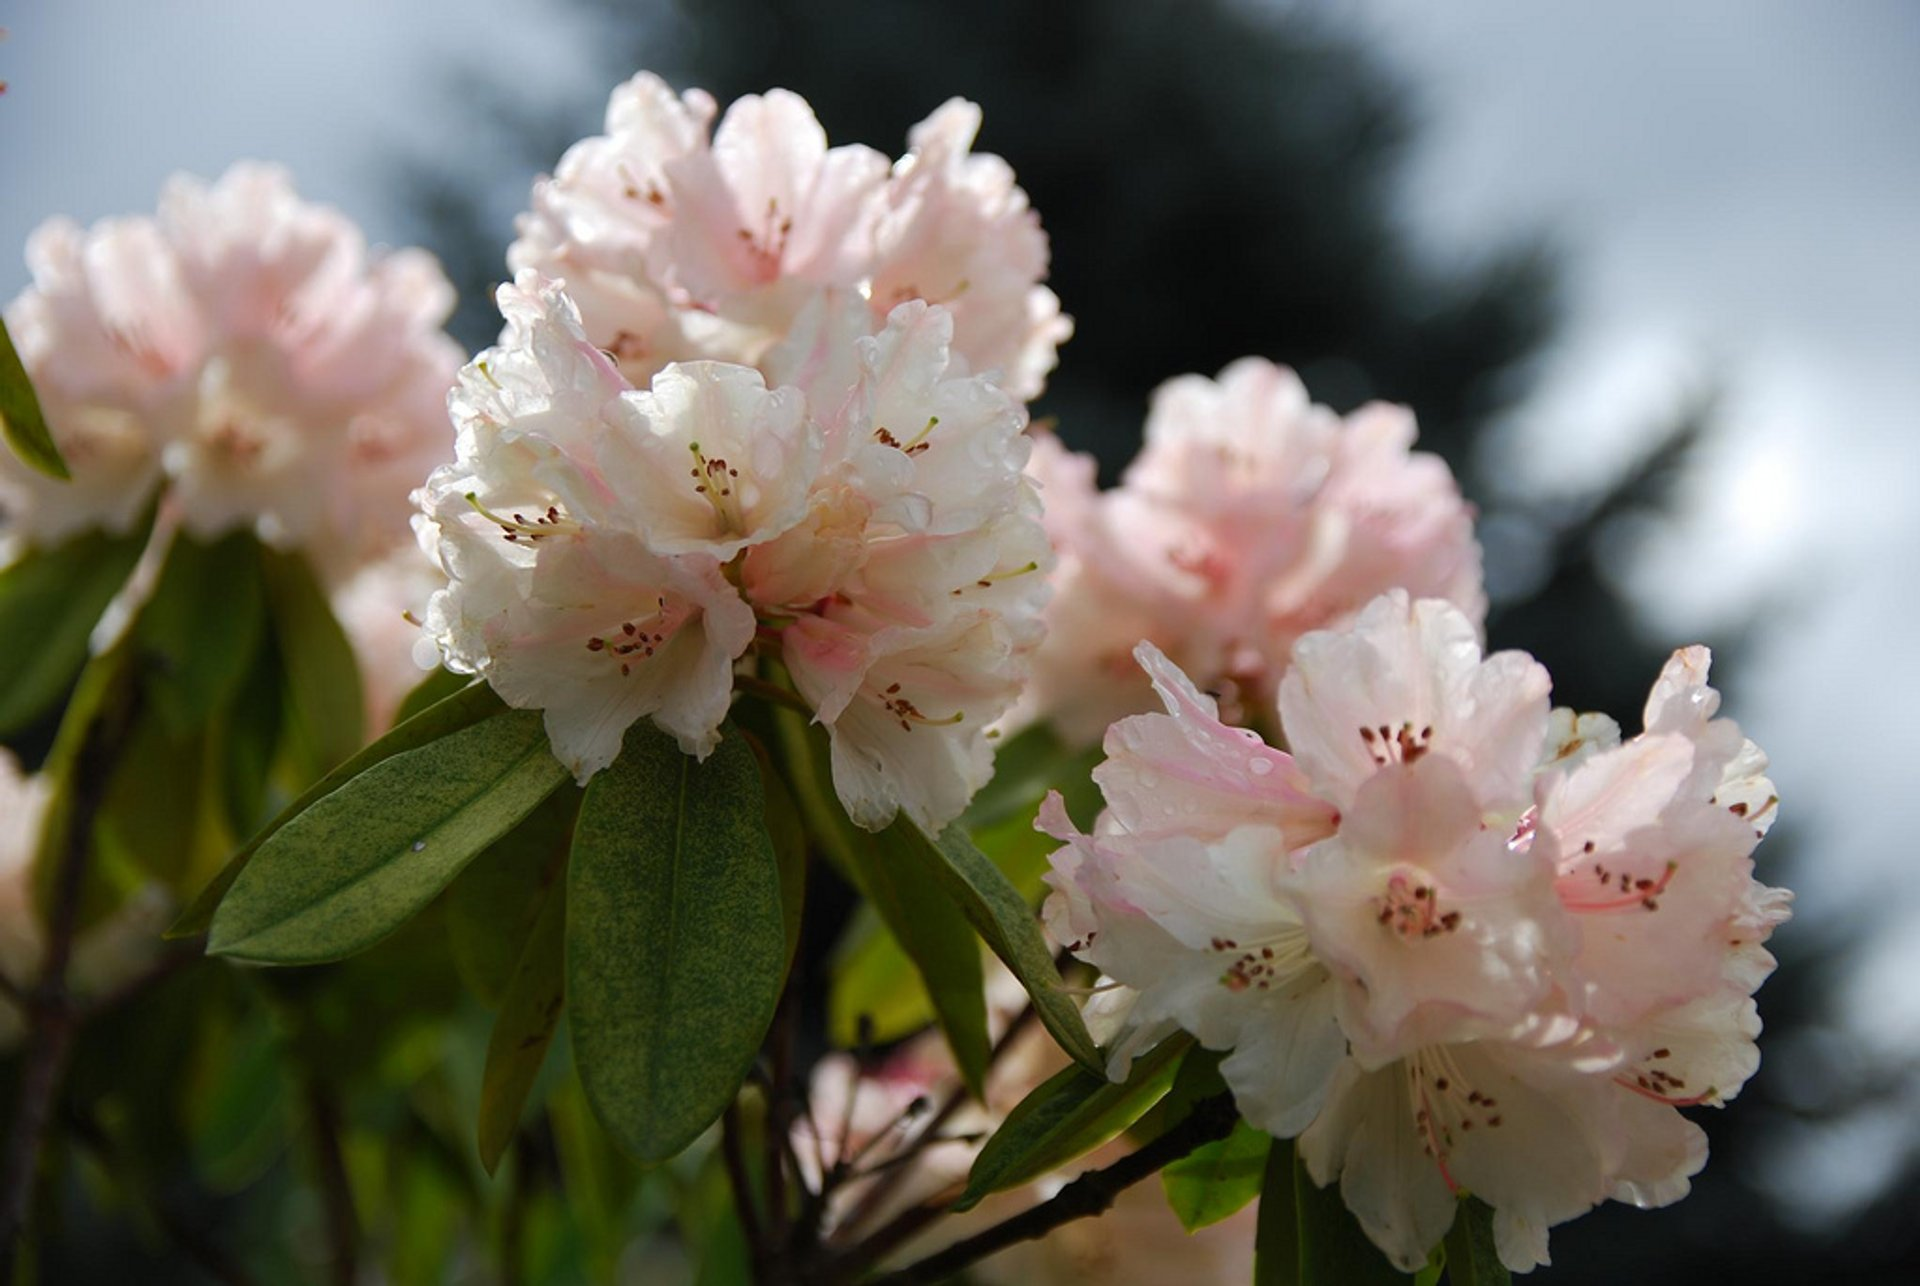 Rhododendron Blooming in Dandenong Ranges Botanic Garden in Victoria 2020 - Best Time